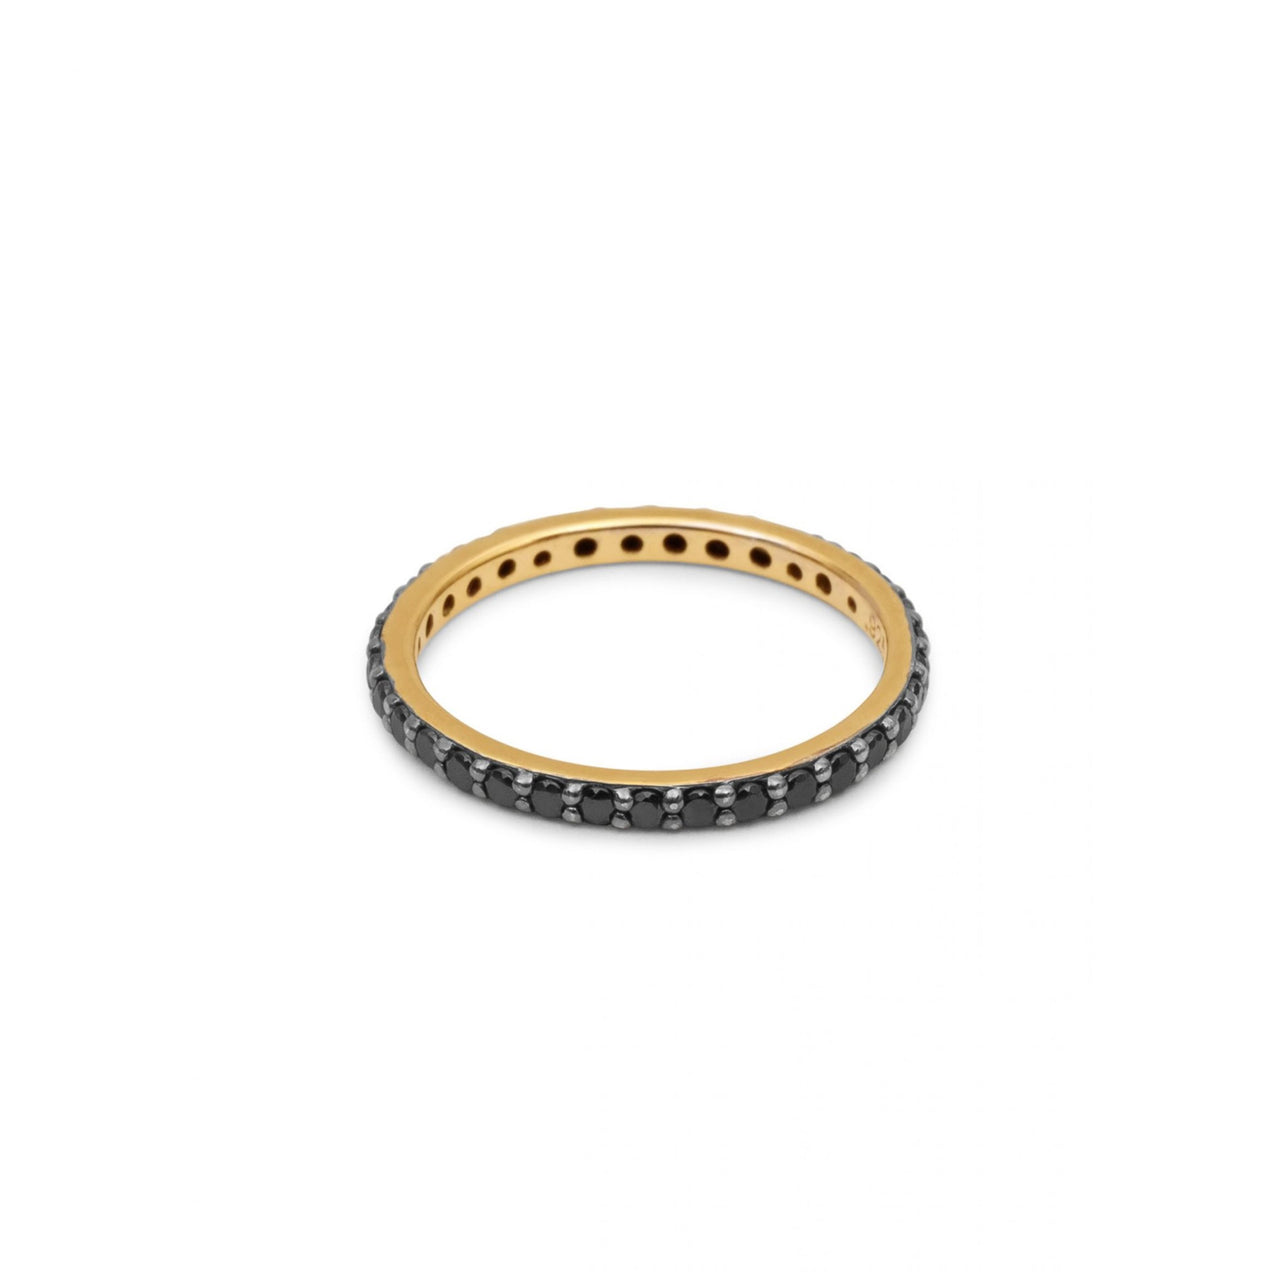 Eternity Ring Yellow Gold with Black Pave